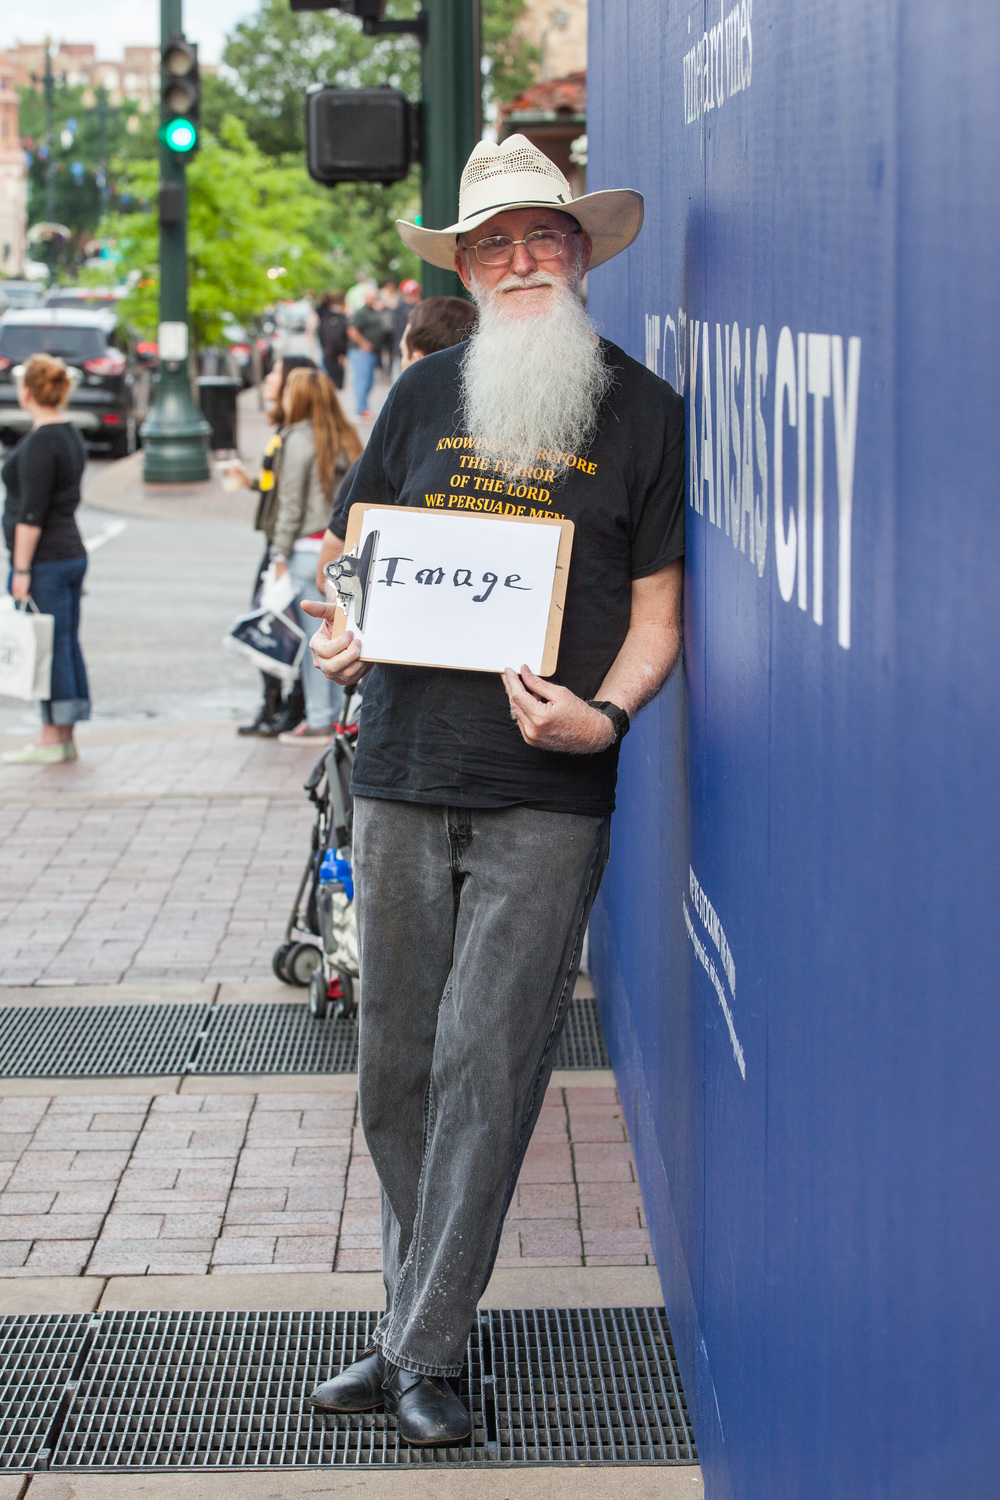 Man leaning against a wall holding a sign that says image.